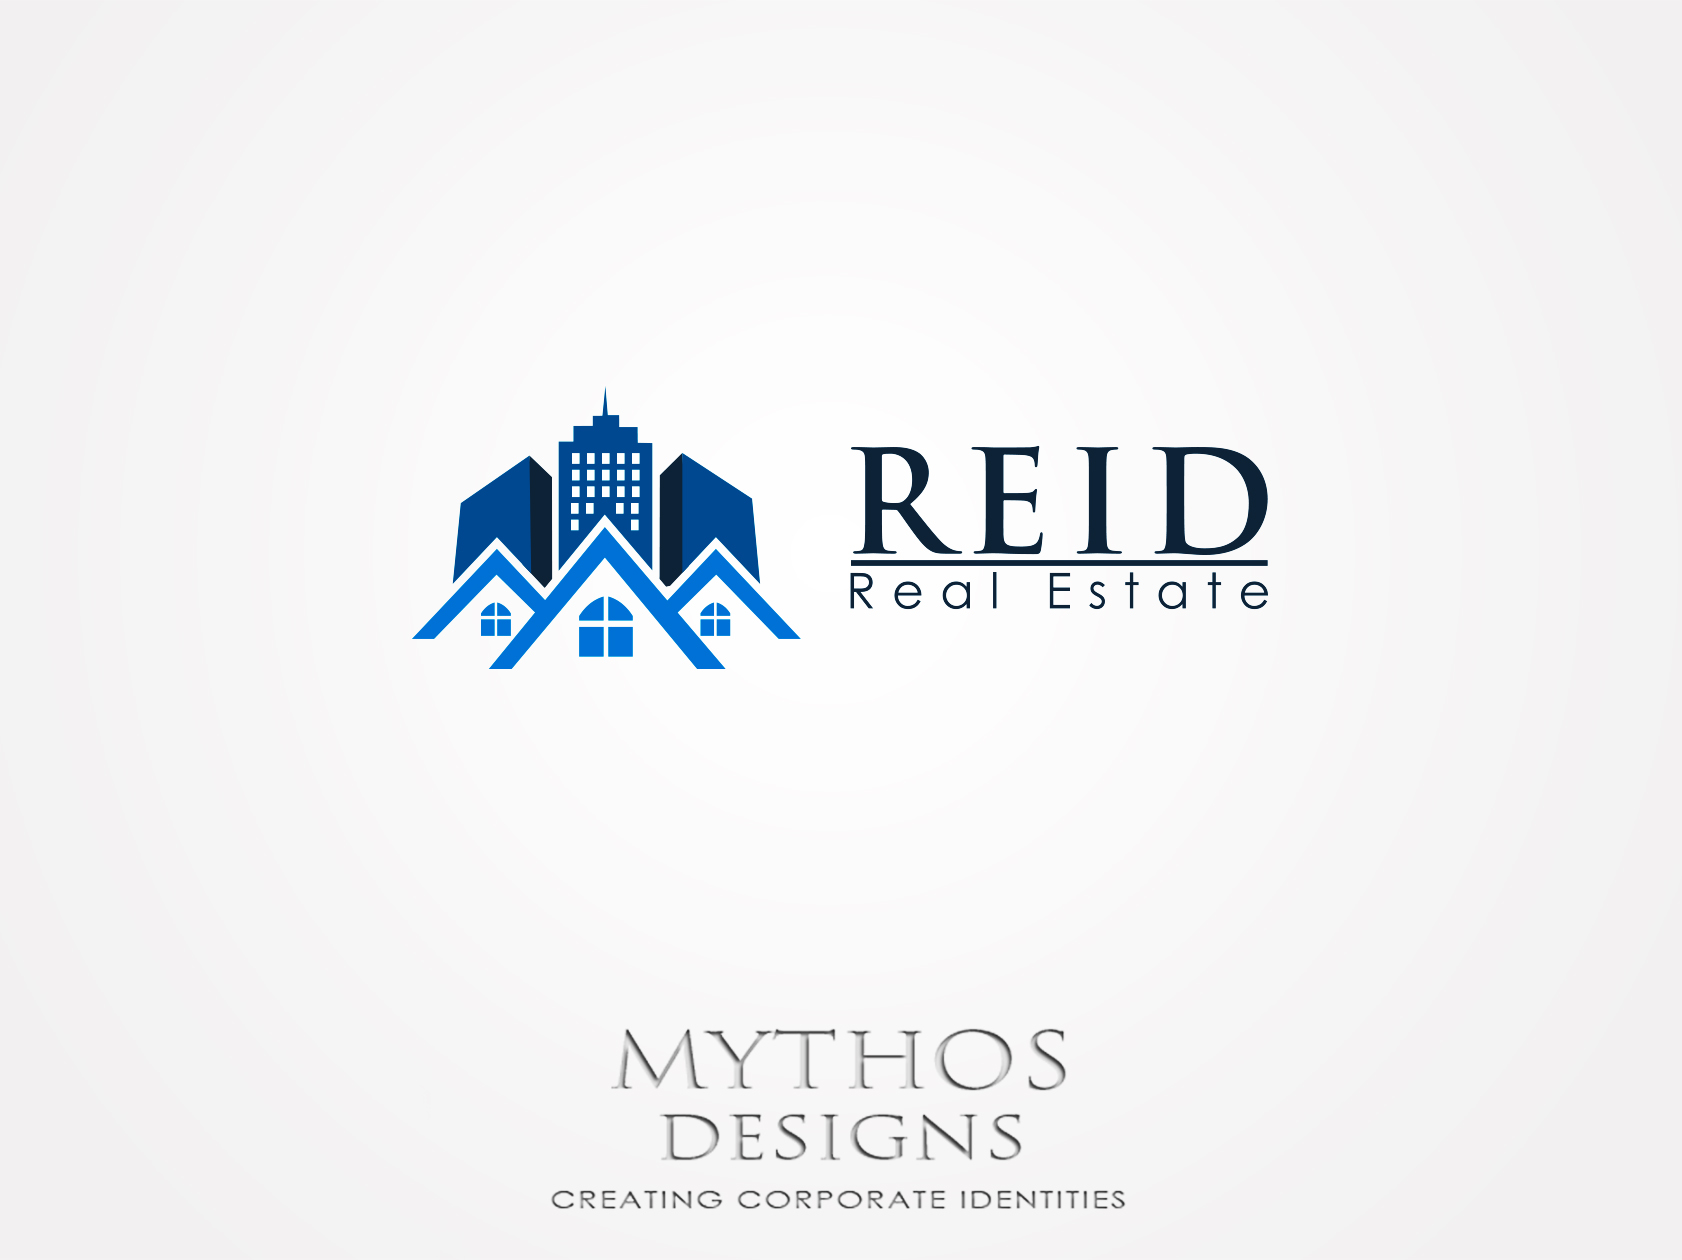 Logo Design by Mythos Designs - Entry No. 17 in the Logo Design Contest Artistic Logo Design for Hadden Properties.